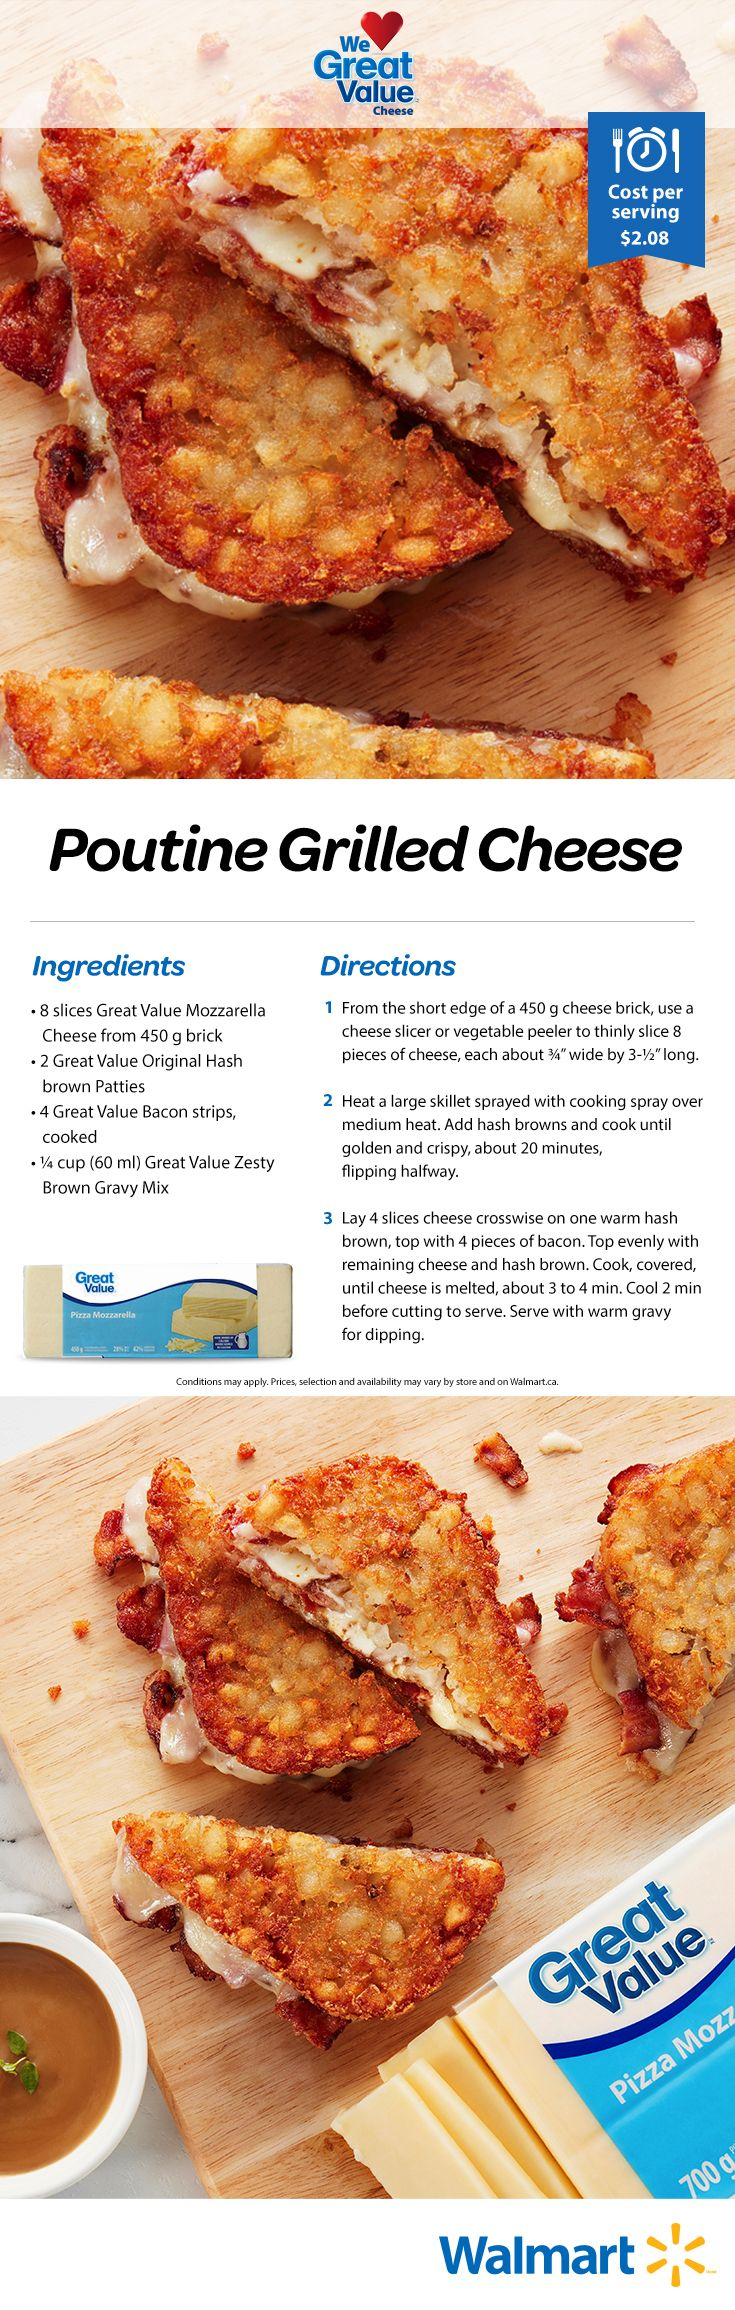 We have crafted a grilled cheese sandwich that will not just make your day better, but possibly your life: Poutine Grilled Cheese! Grab our Great Value Pizza Mozzarella Cheese and whip these up for the family. Only $2.08 per serving. #grilledcheese #grilledcheesesandwiches #sandwiches #cheesesandwiches #poutine #pountinegrilledcheese #kidfriendlylunch #lunches #lunchrecipes #grilledcheeserecipes #realsolutions #savemoneyeatbetter